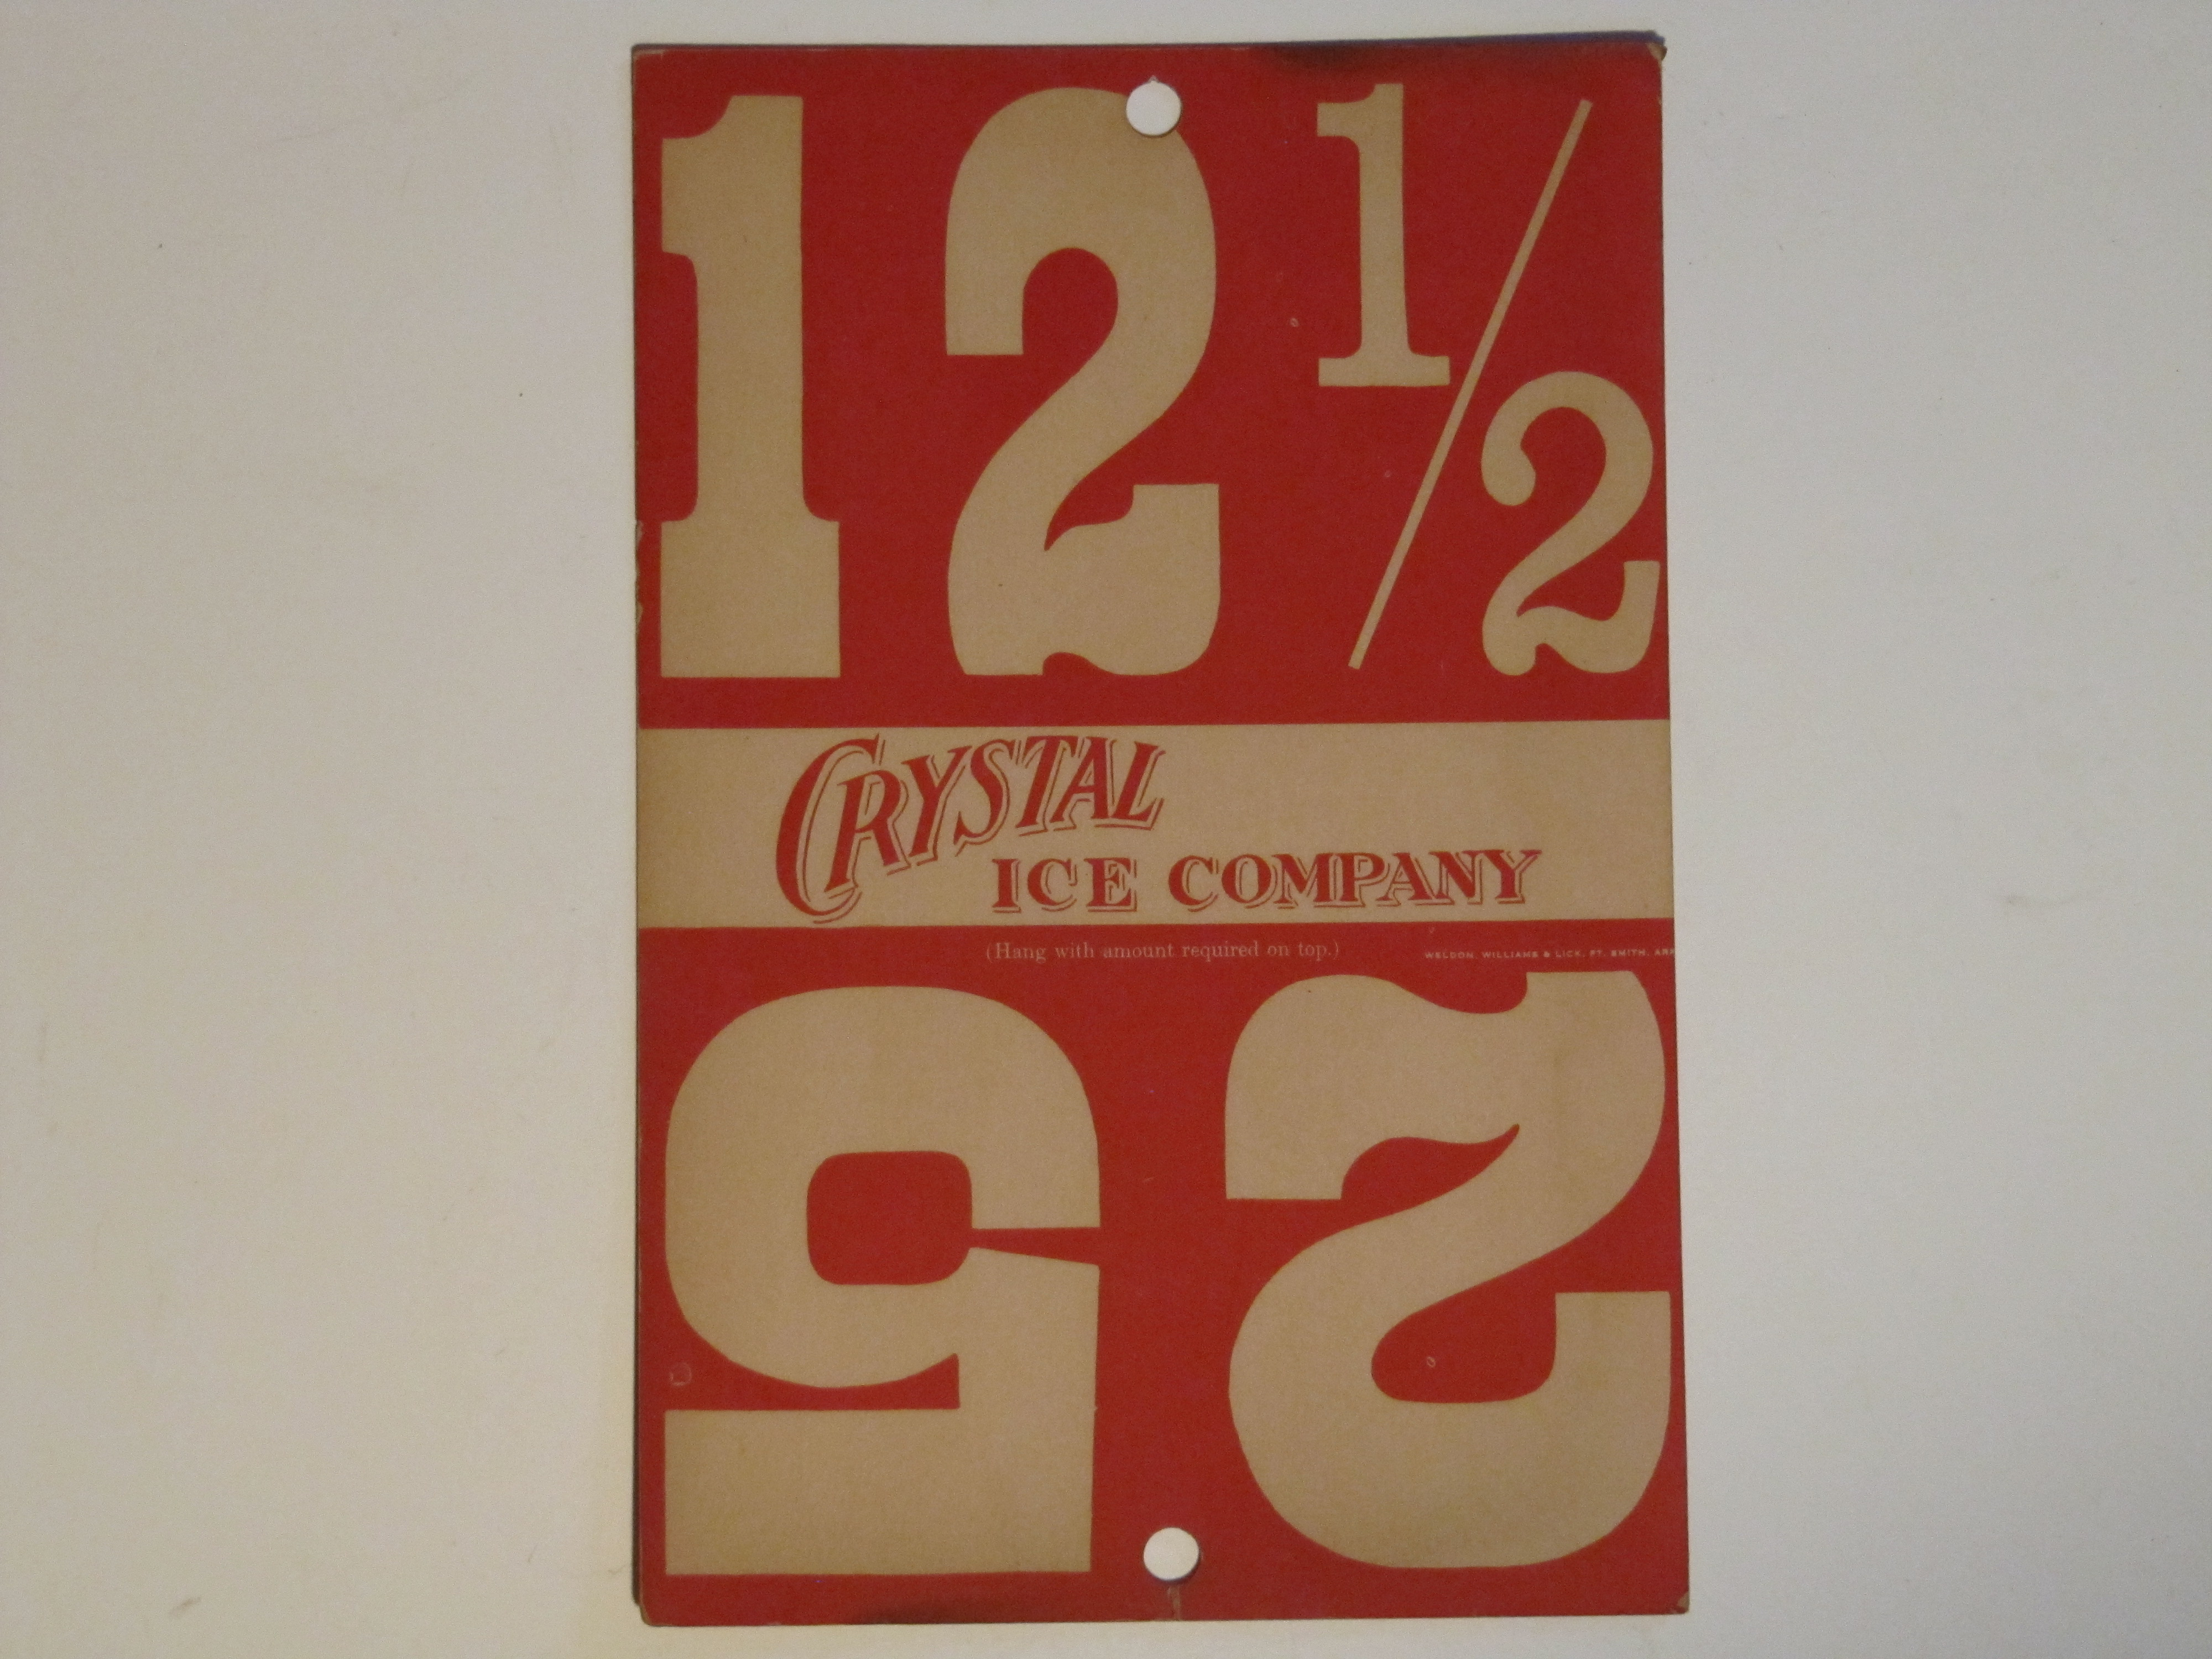 Crystal Ice Co. Rect